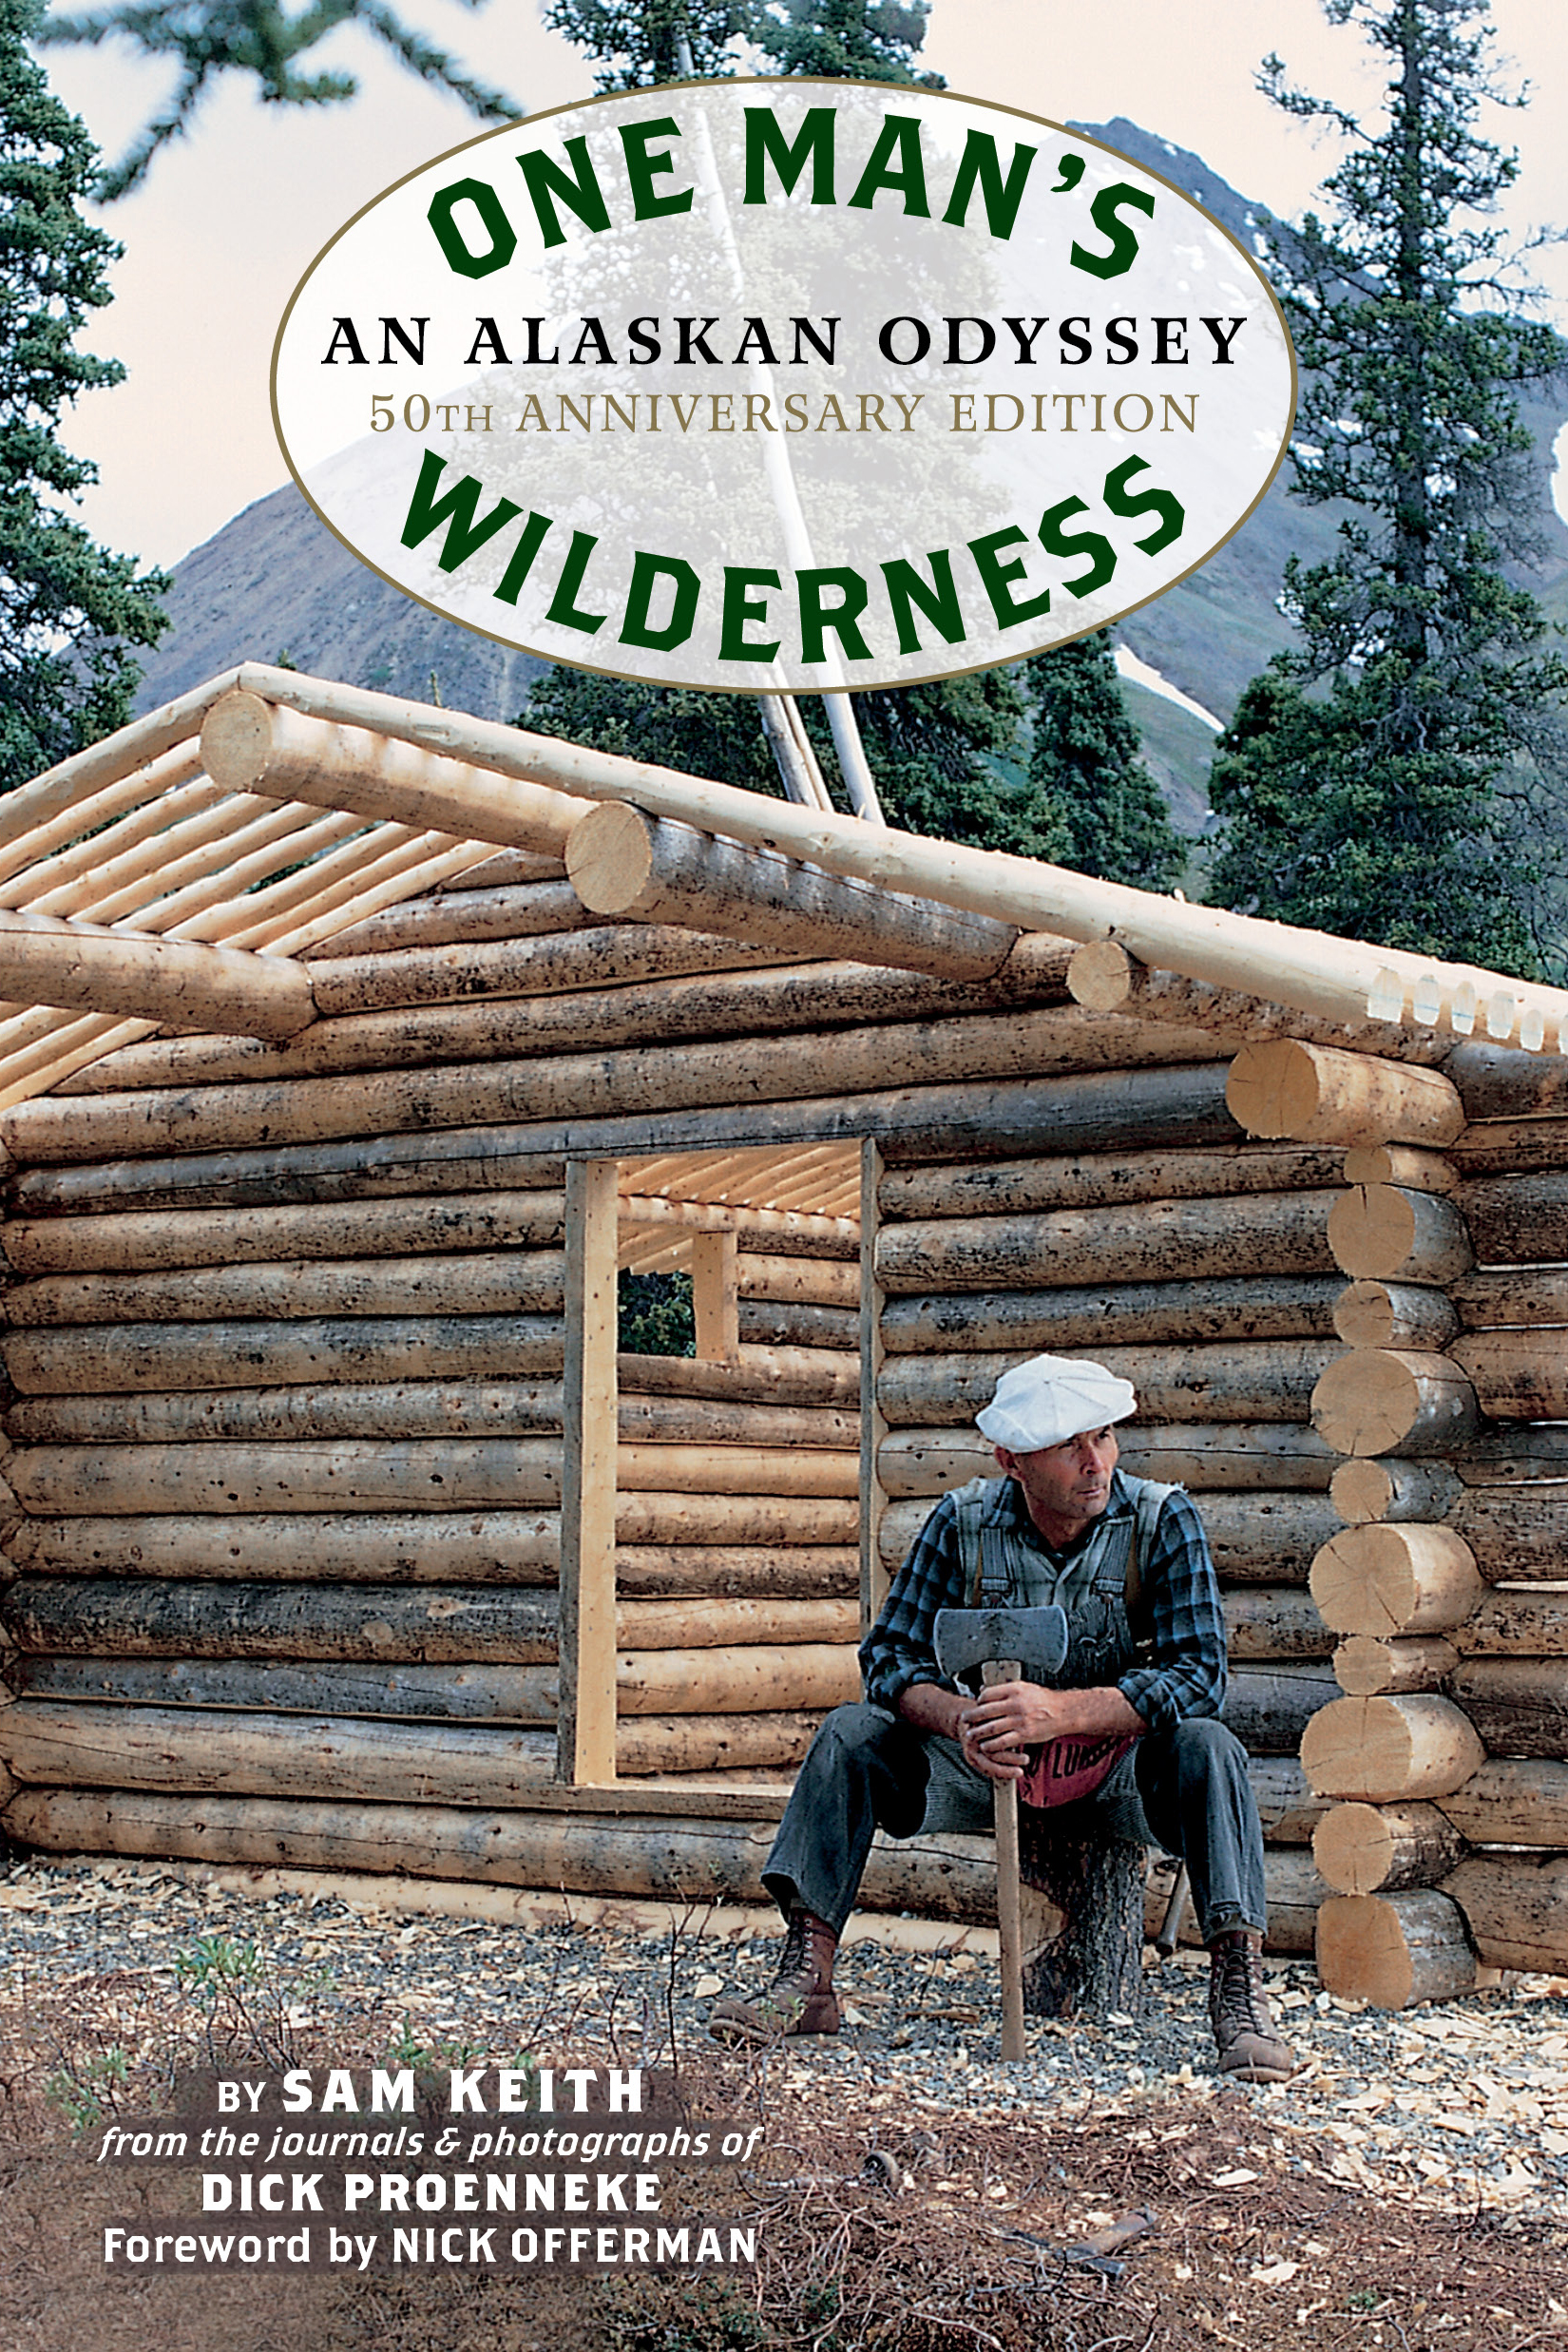 One Man's Wilderness, 50th Anniversary Edition An Alaskan Odyssey